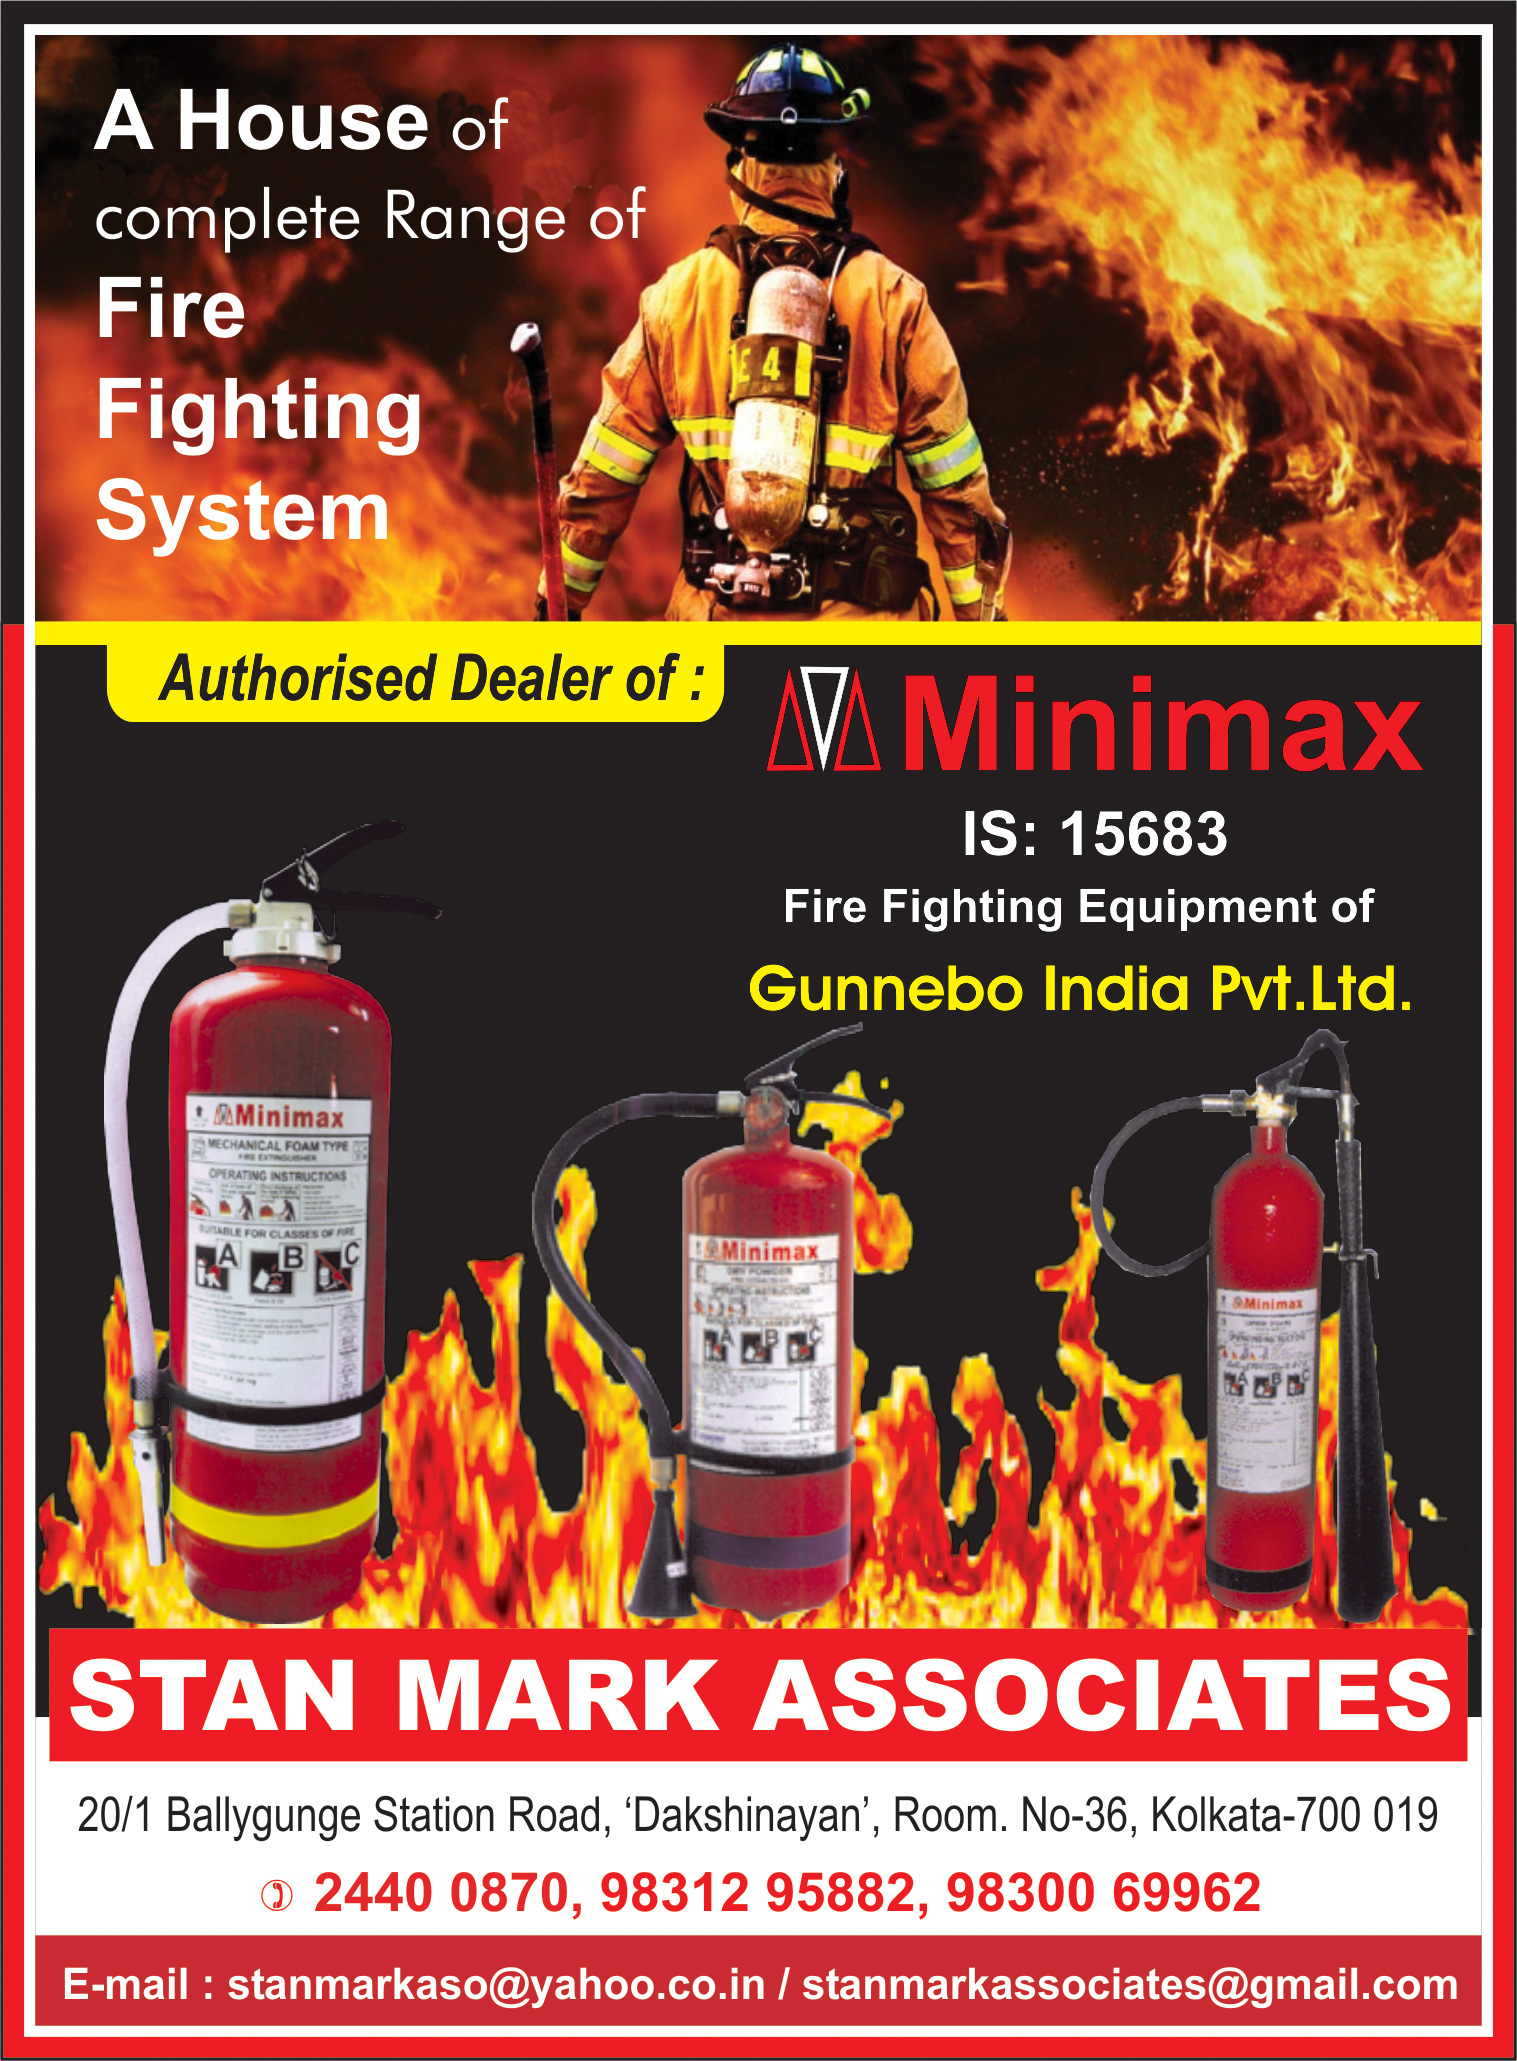 Fire Fighting Equipment, STAN MARK ASSOCIATES, Kolkata,  Yellow Pages, Kolkata, West Bengal